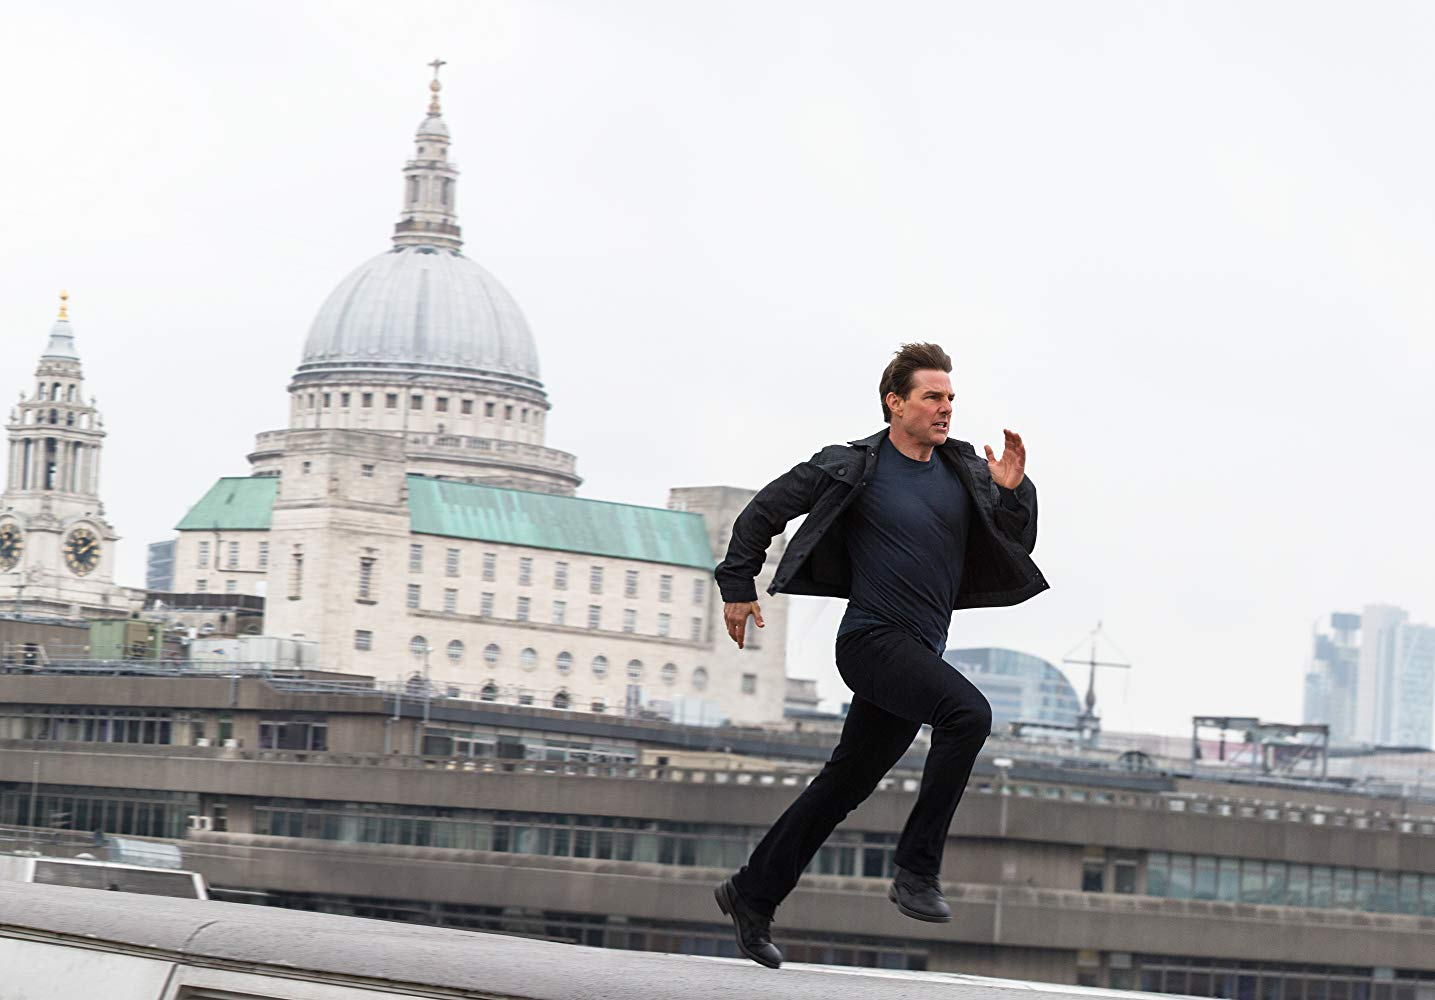 Ethan Hunt (Tom Cruise) back in action in a furious chase across the rooftops of London in Mission: Impossible - Fallout (2018)